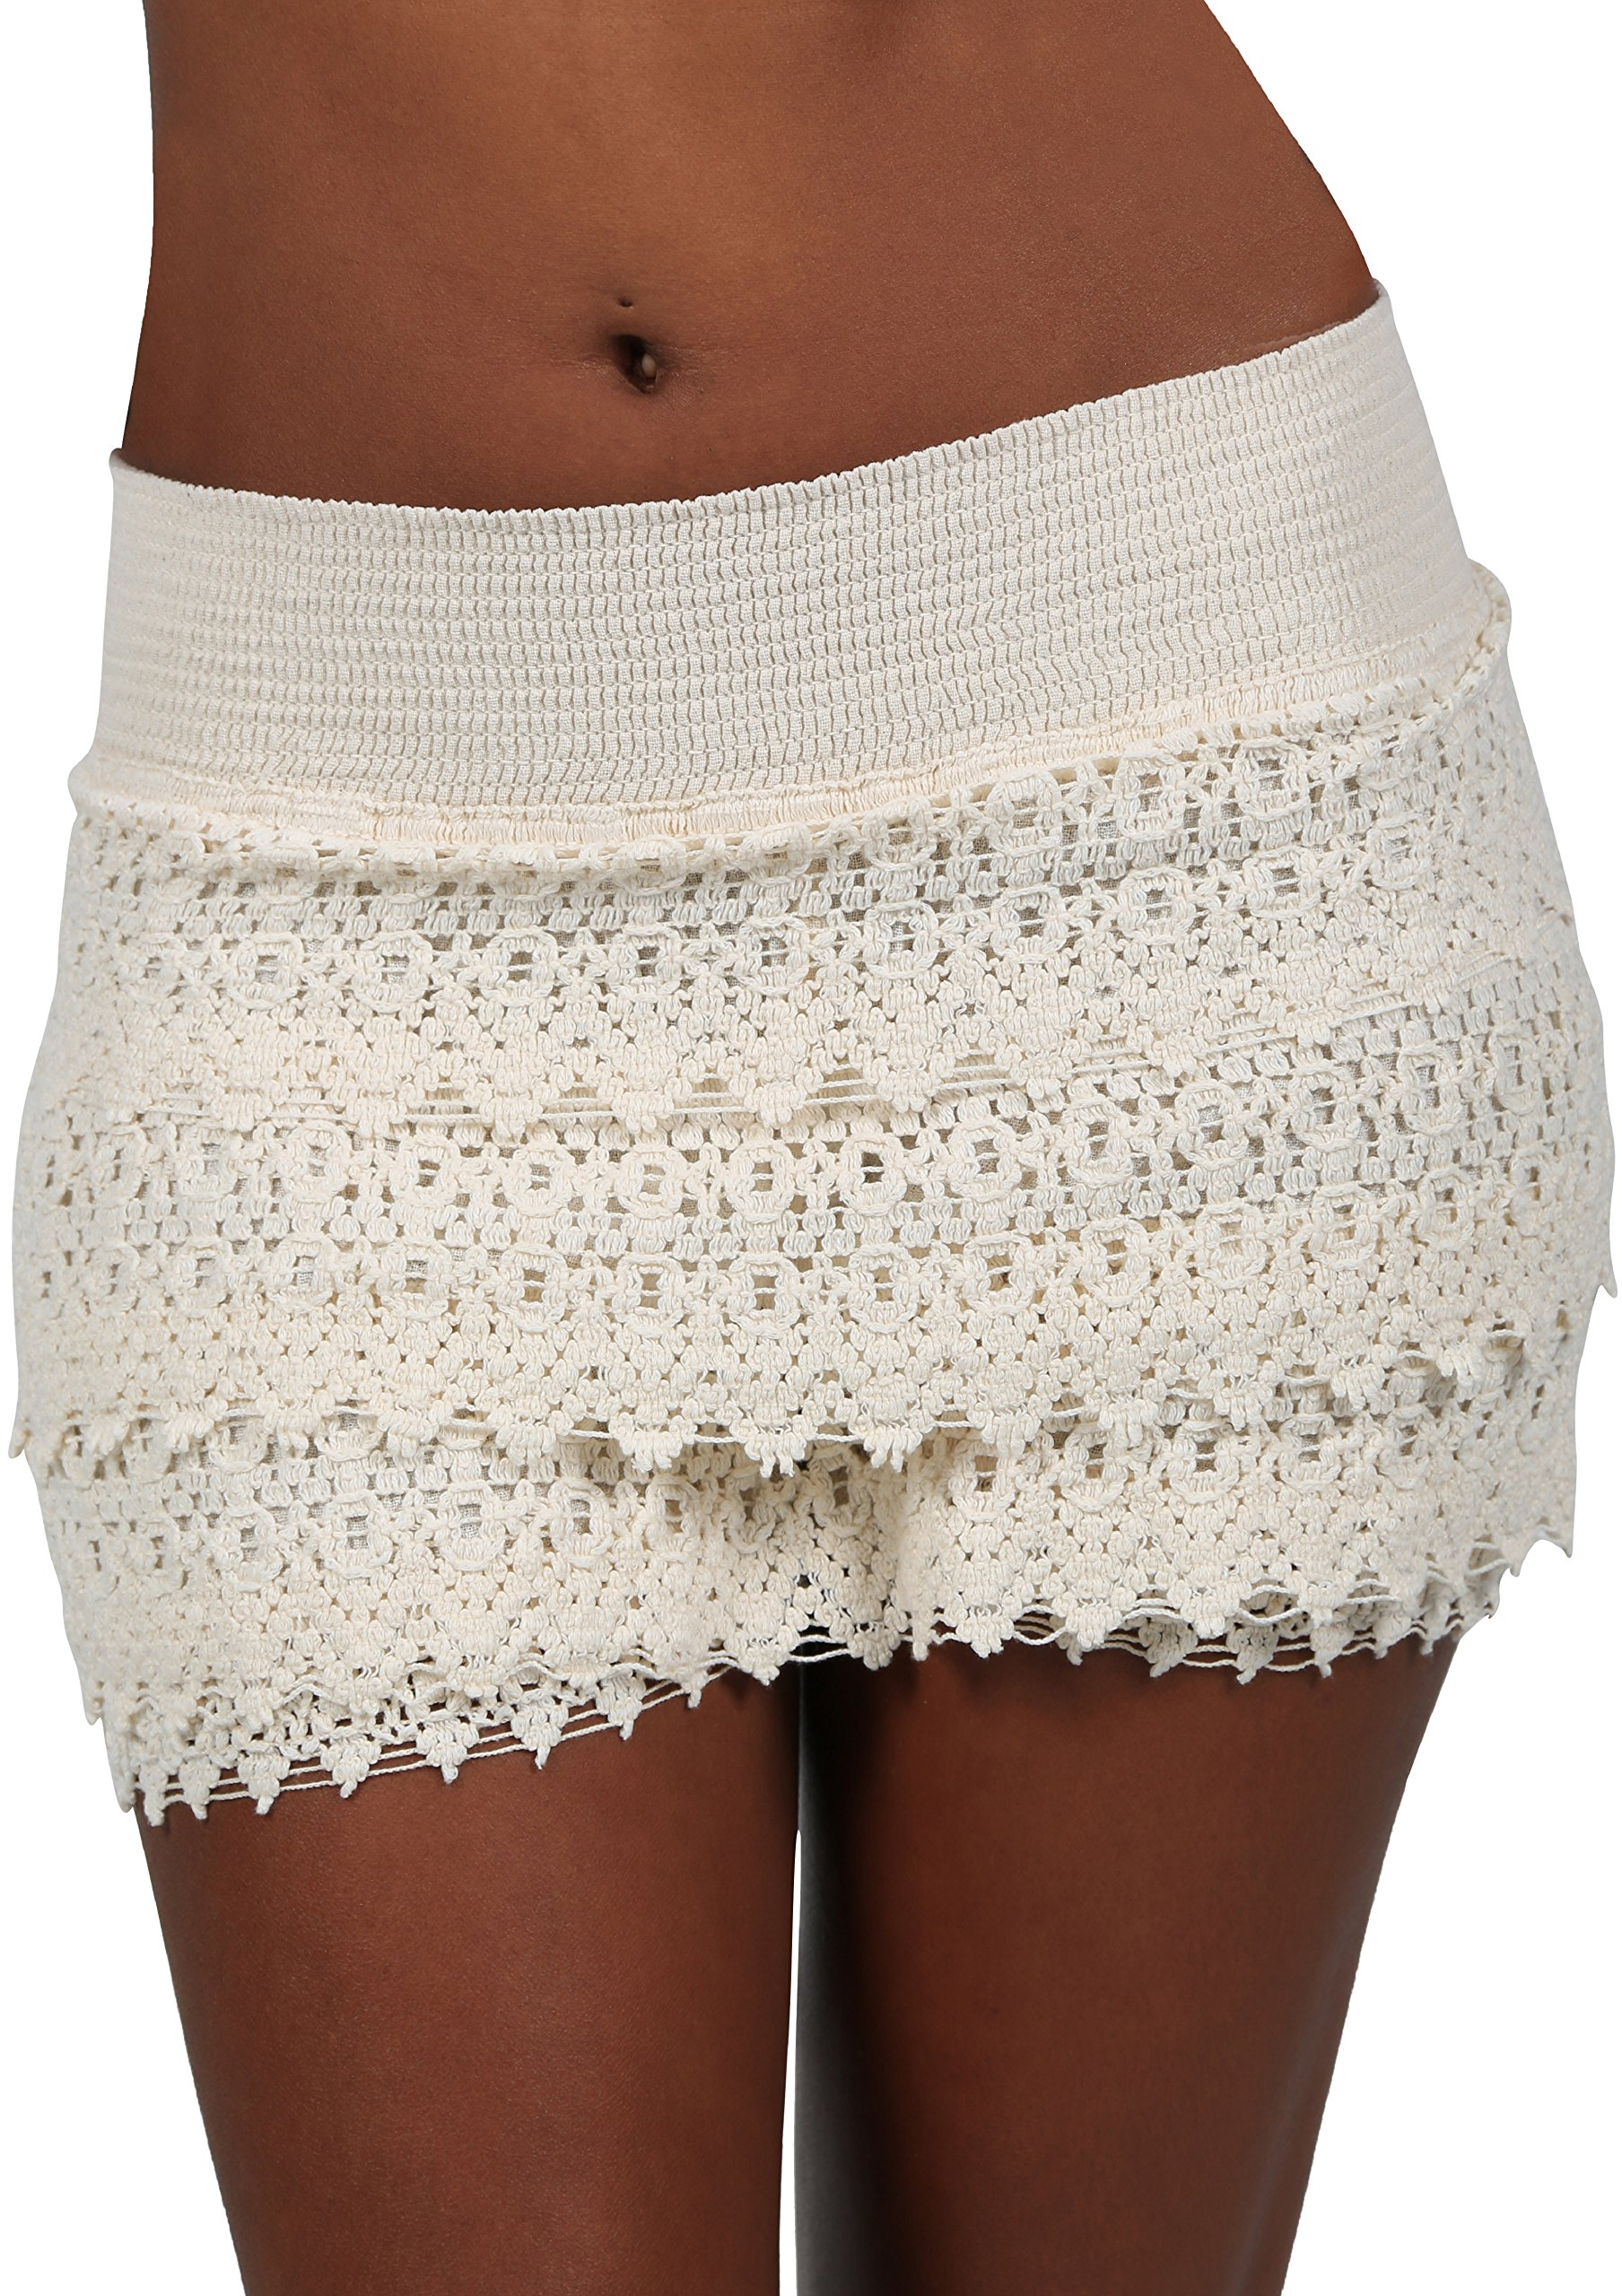 PURE COTTON Women's Lace Shorts Casual Cotton Crochet Summer Beach Miniskirts (Ivory, XXX-Large)